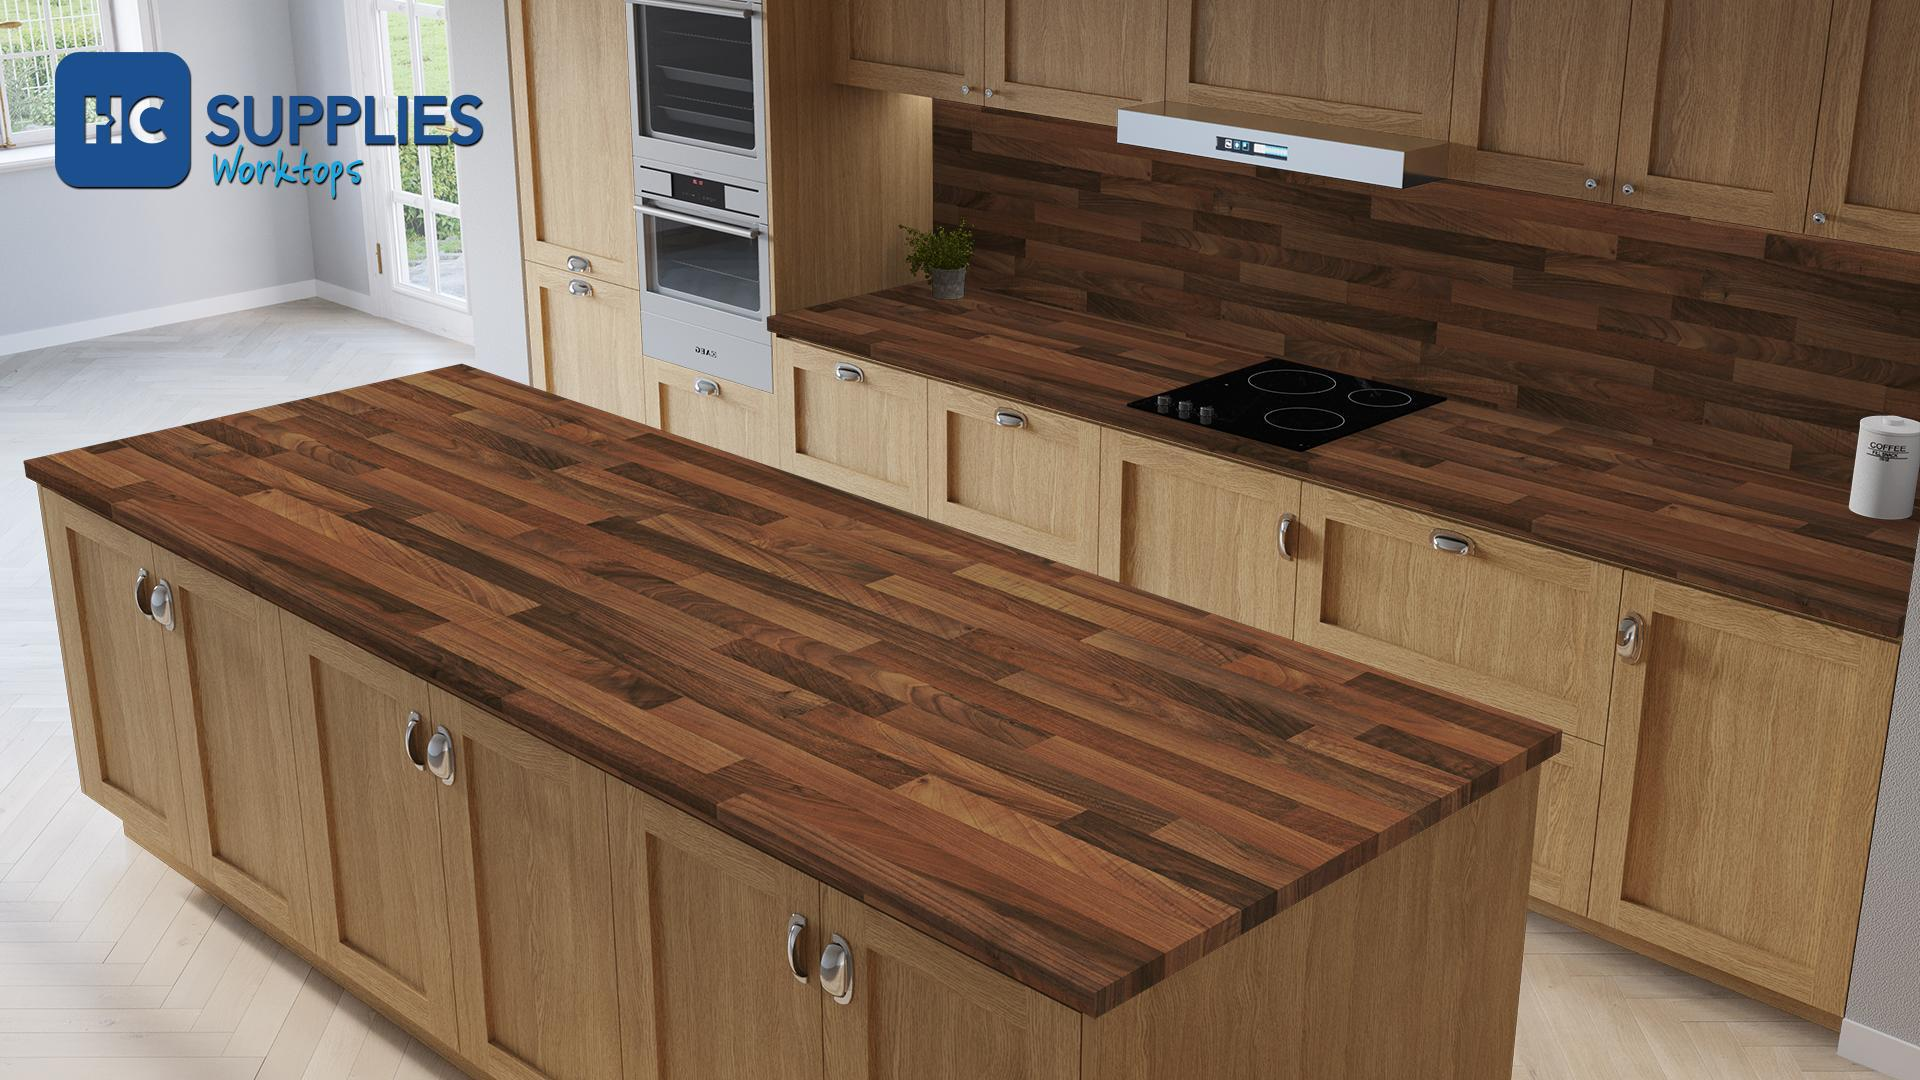 Tandem Walnut Butcher Block  Worktop Product Image